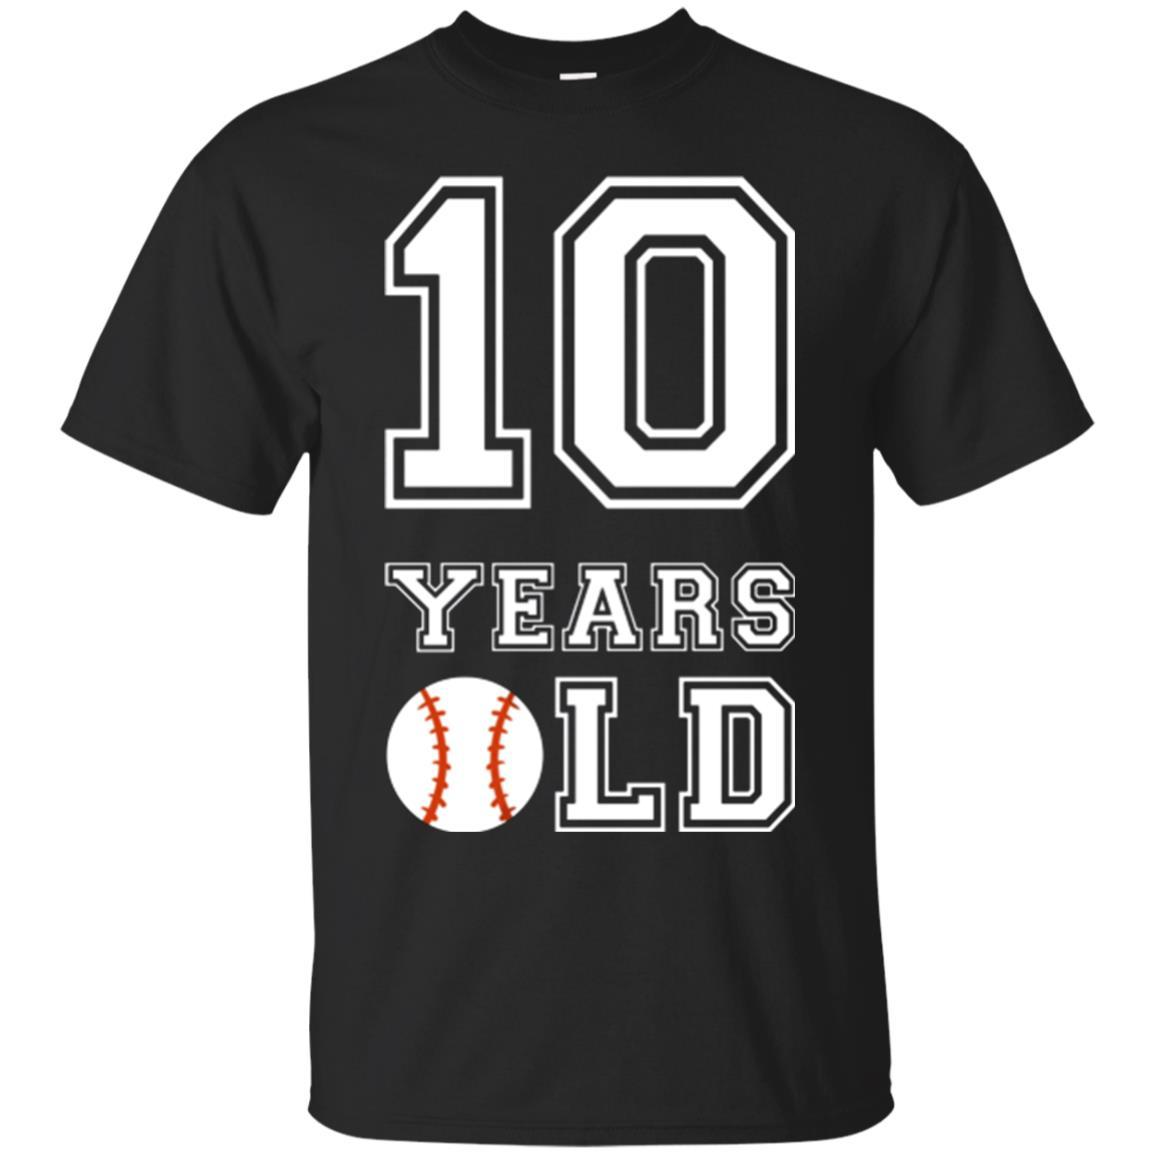 10 Years Old Baseball Birthday Shirt Boy 10th Tee ZGalaxy Fashion T